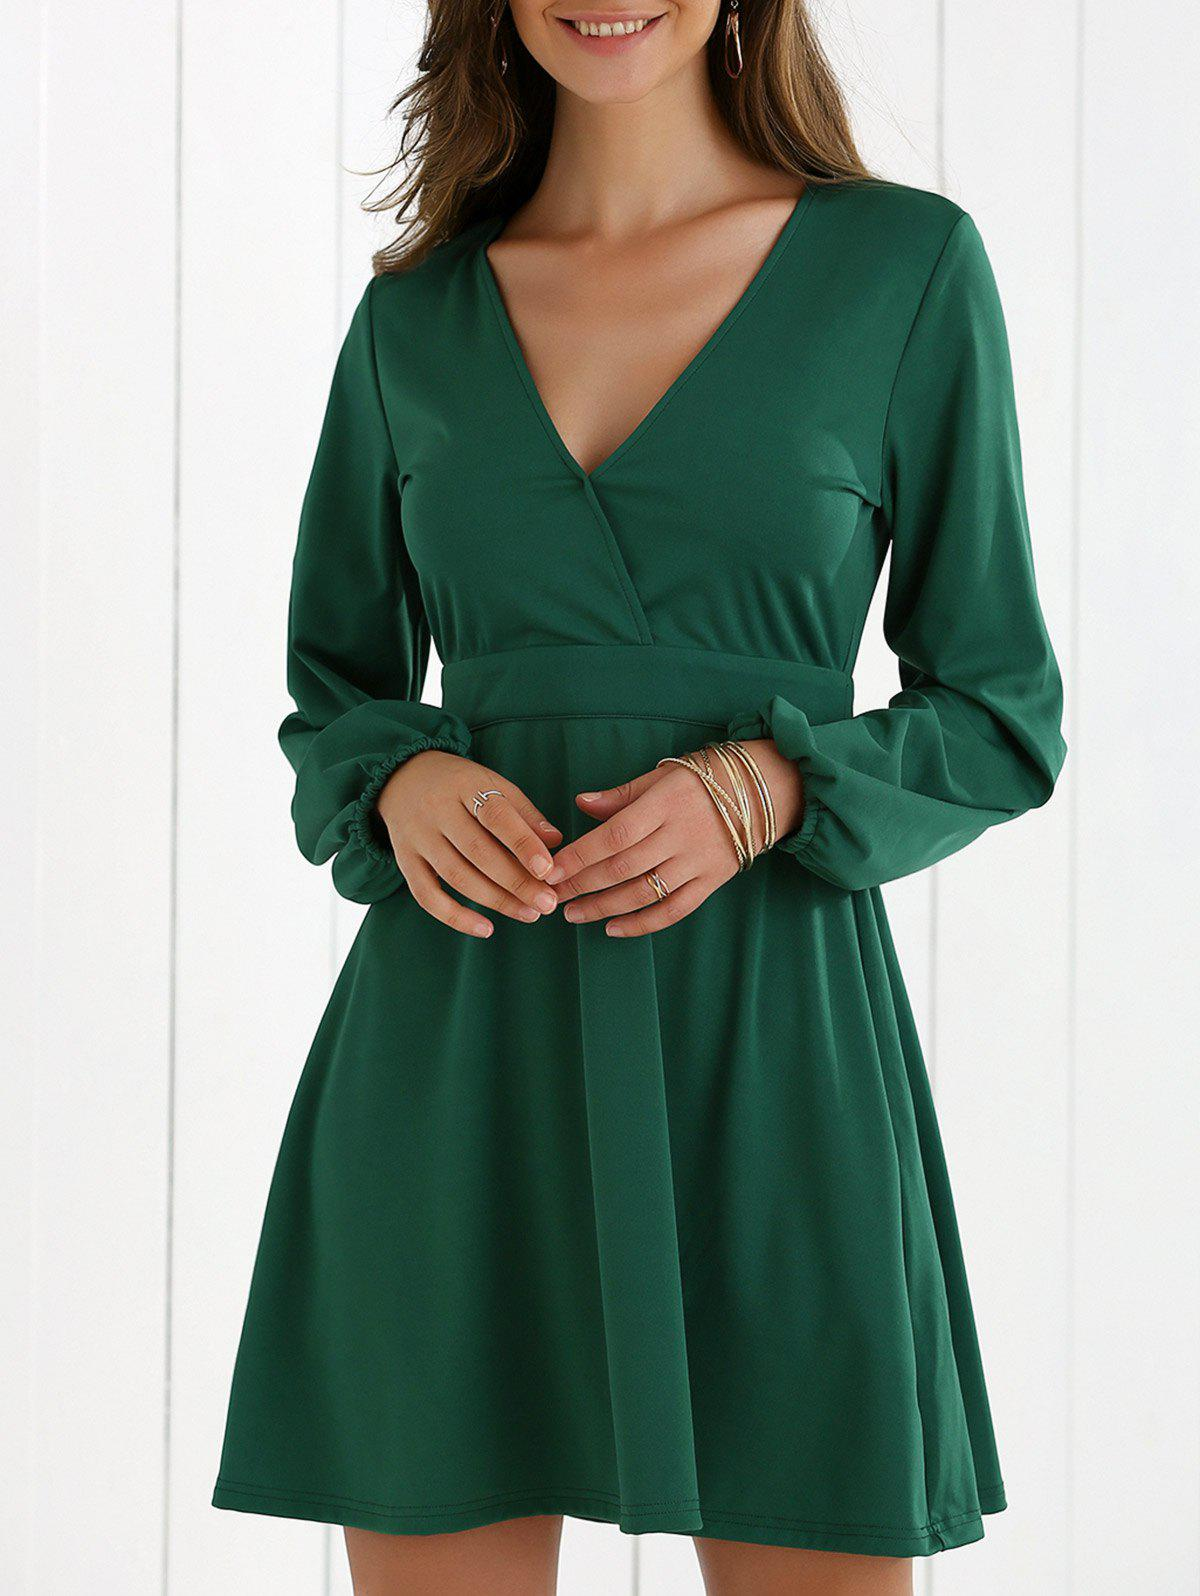 Low Cut Fit and Flare Dress - DEEP GREEN XL